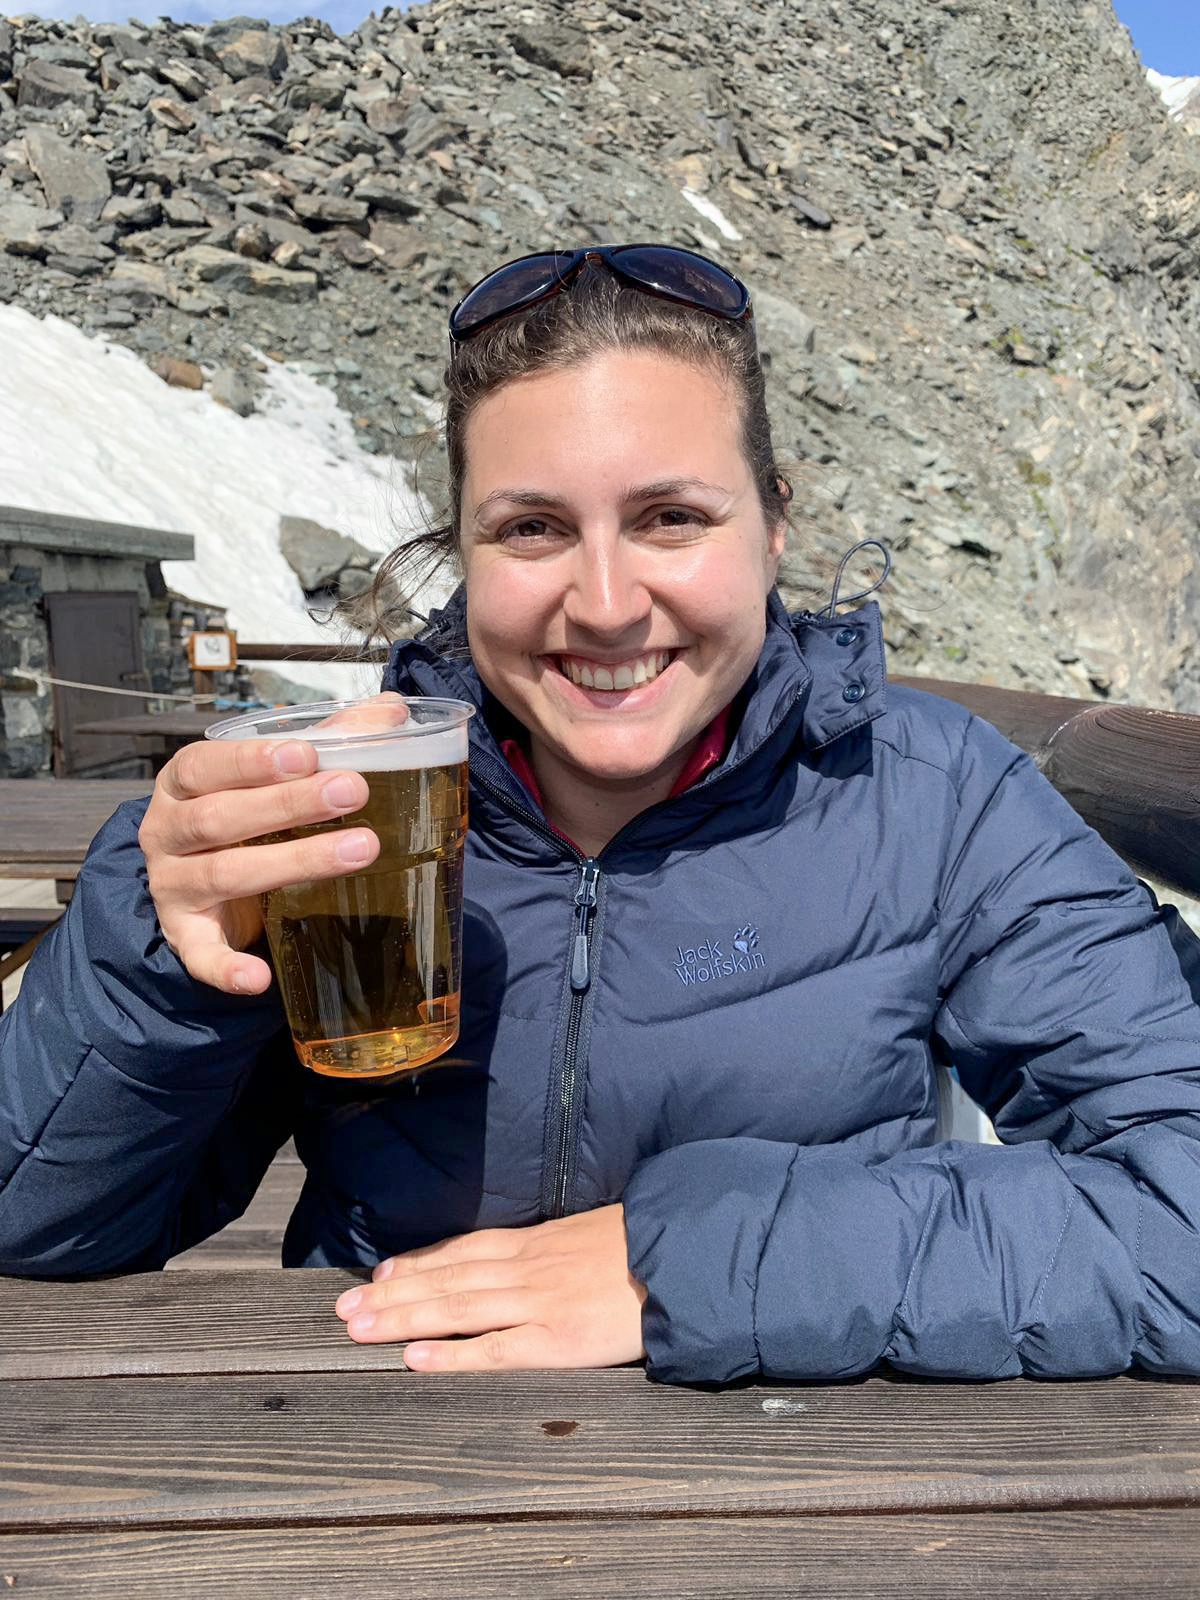 Girl wearing Jack Wolfskin selenium jacket in navy blue, sat outside in the sunshine smiling directly at the camera with a cold pint of beer in her hand. In the background is a stony mountain and some snow.